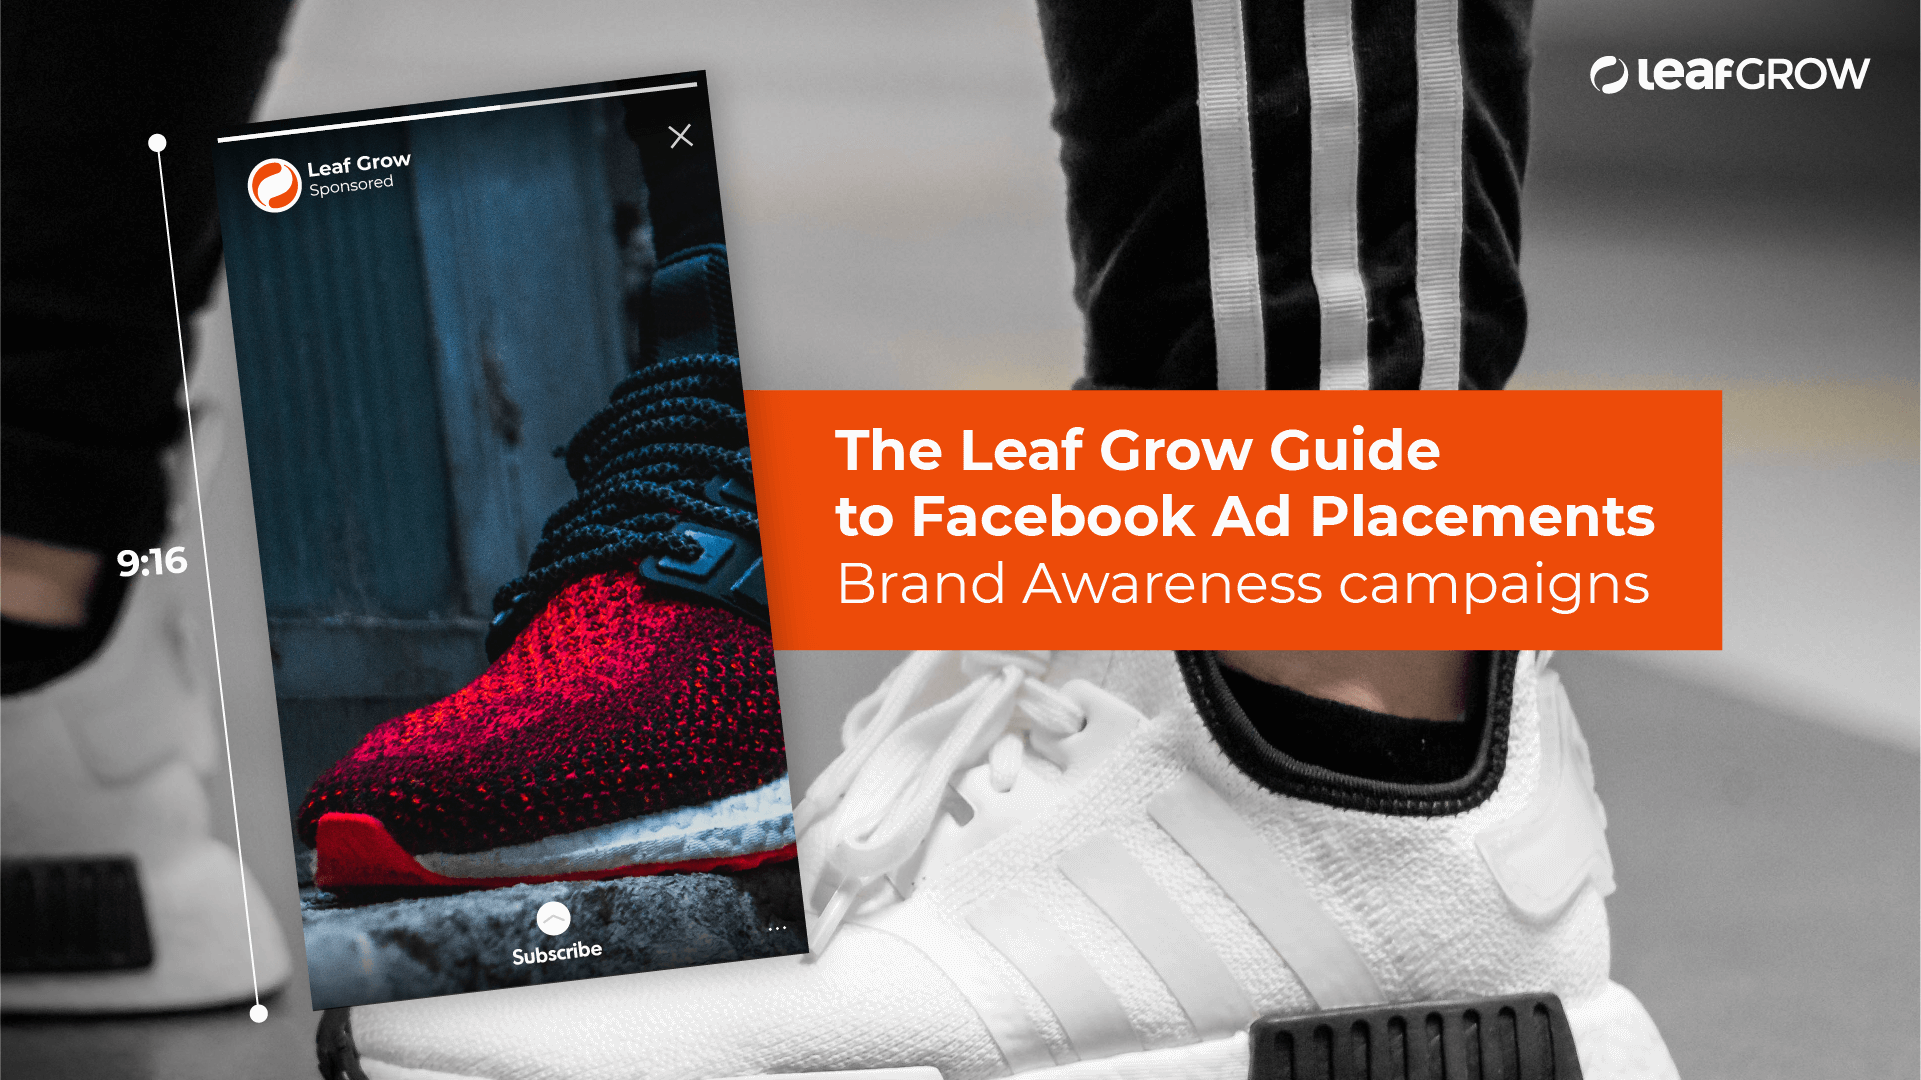 The Leaf Grow Guide to Facebook Ad Placements: Brand Awareness campaigns -